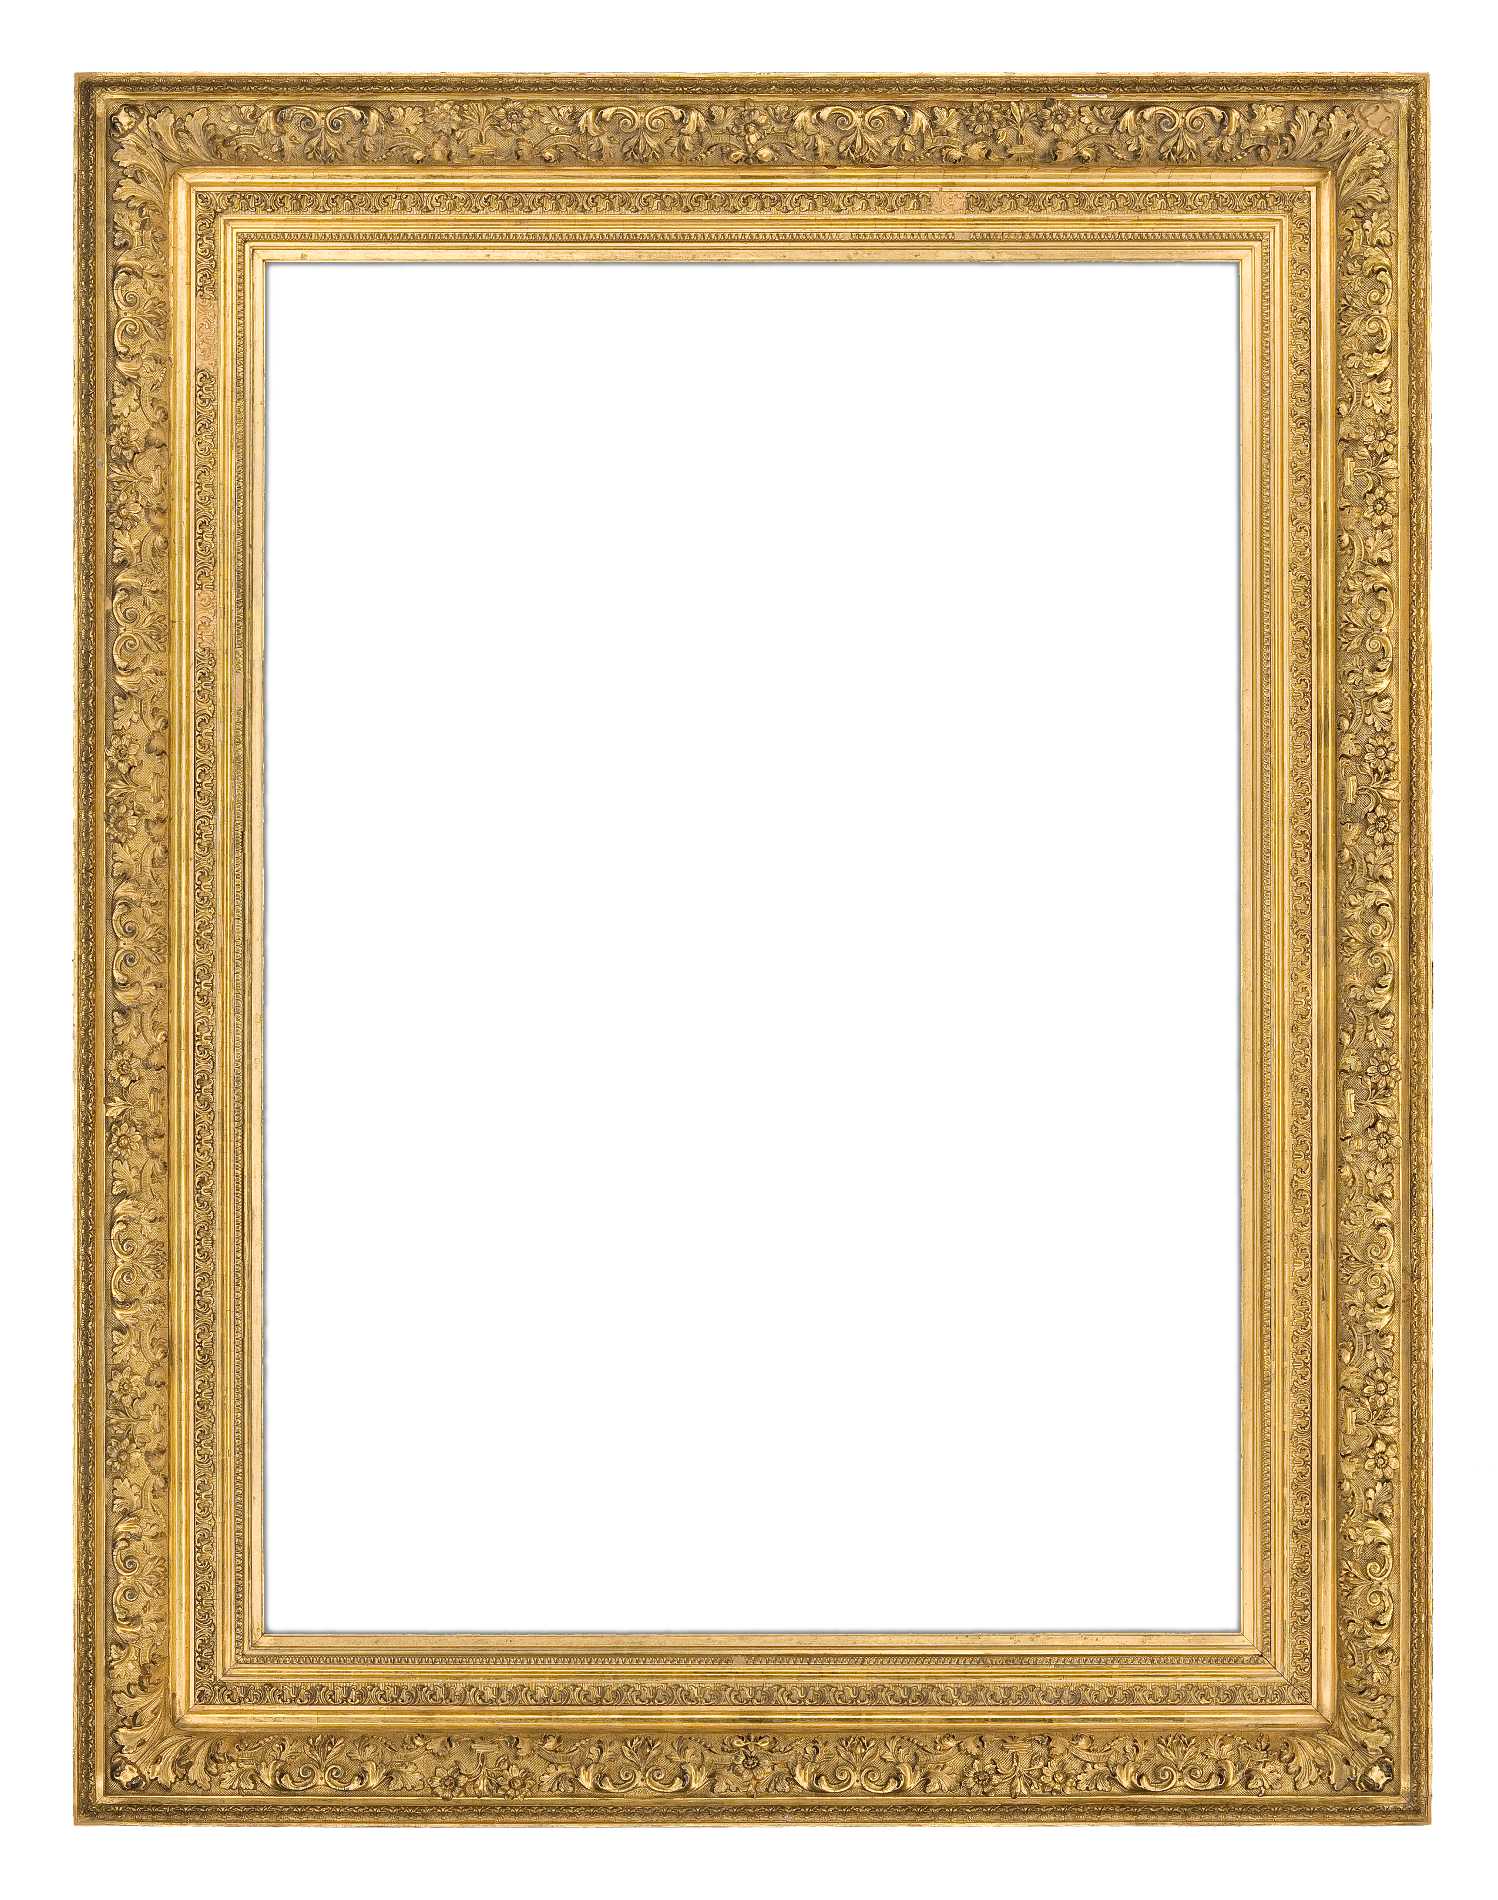 museum picture frames images